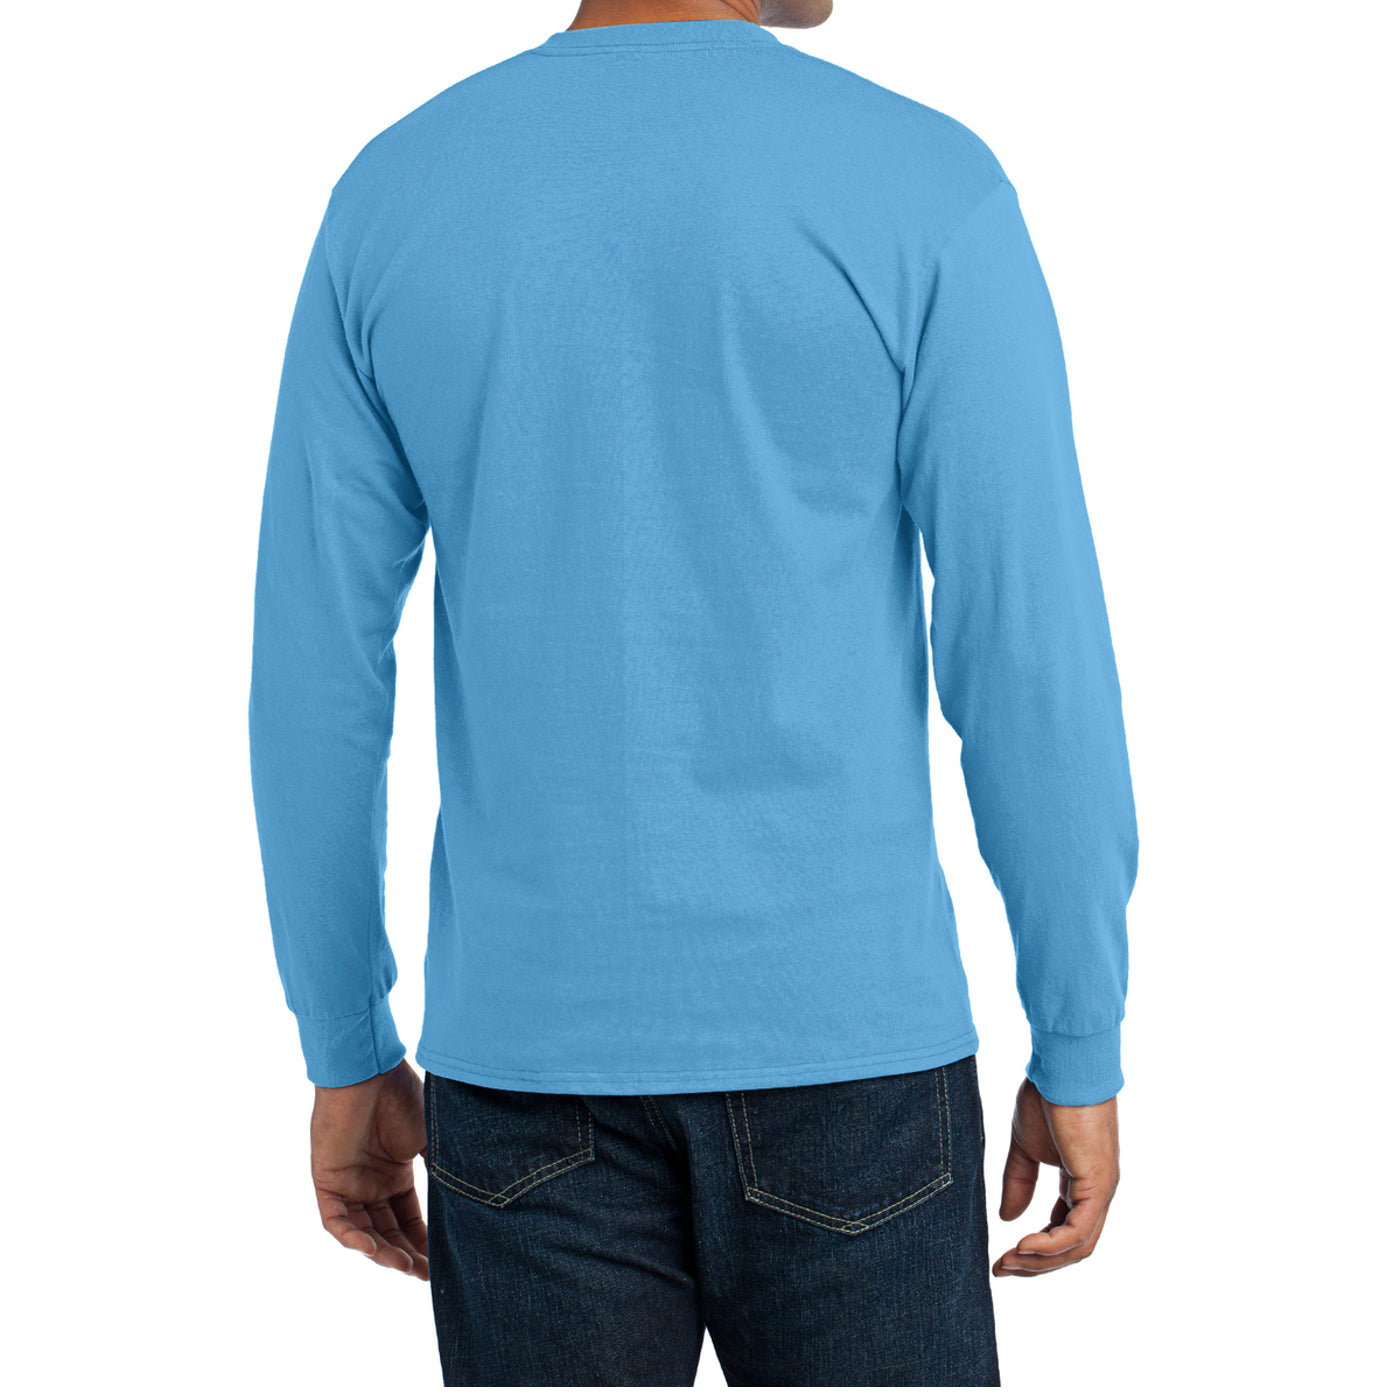 Men's Long Sleeve Core Blend Tee - Aquatic Blue – Back